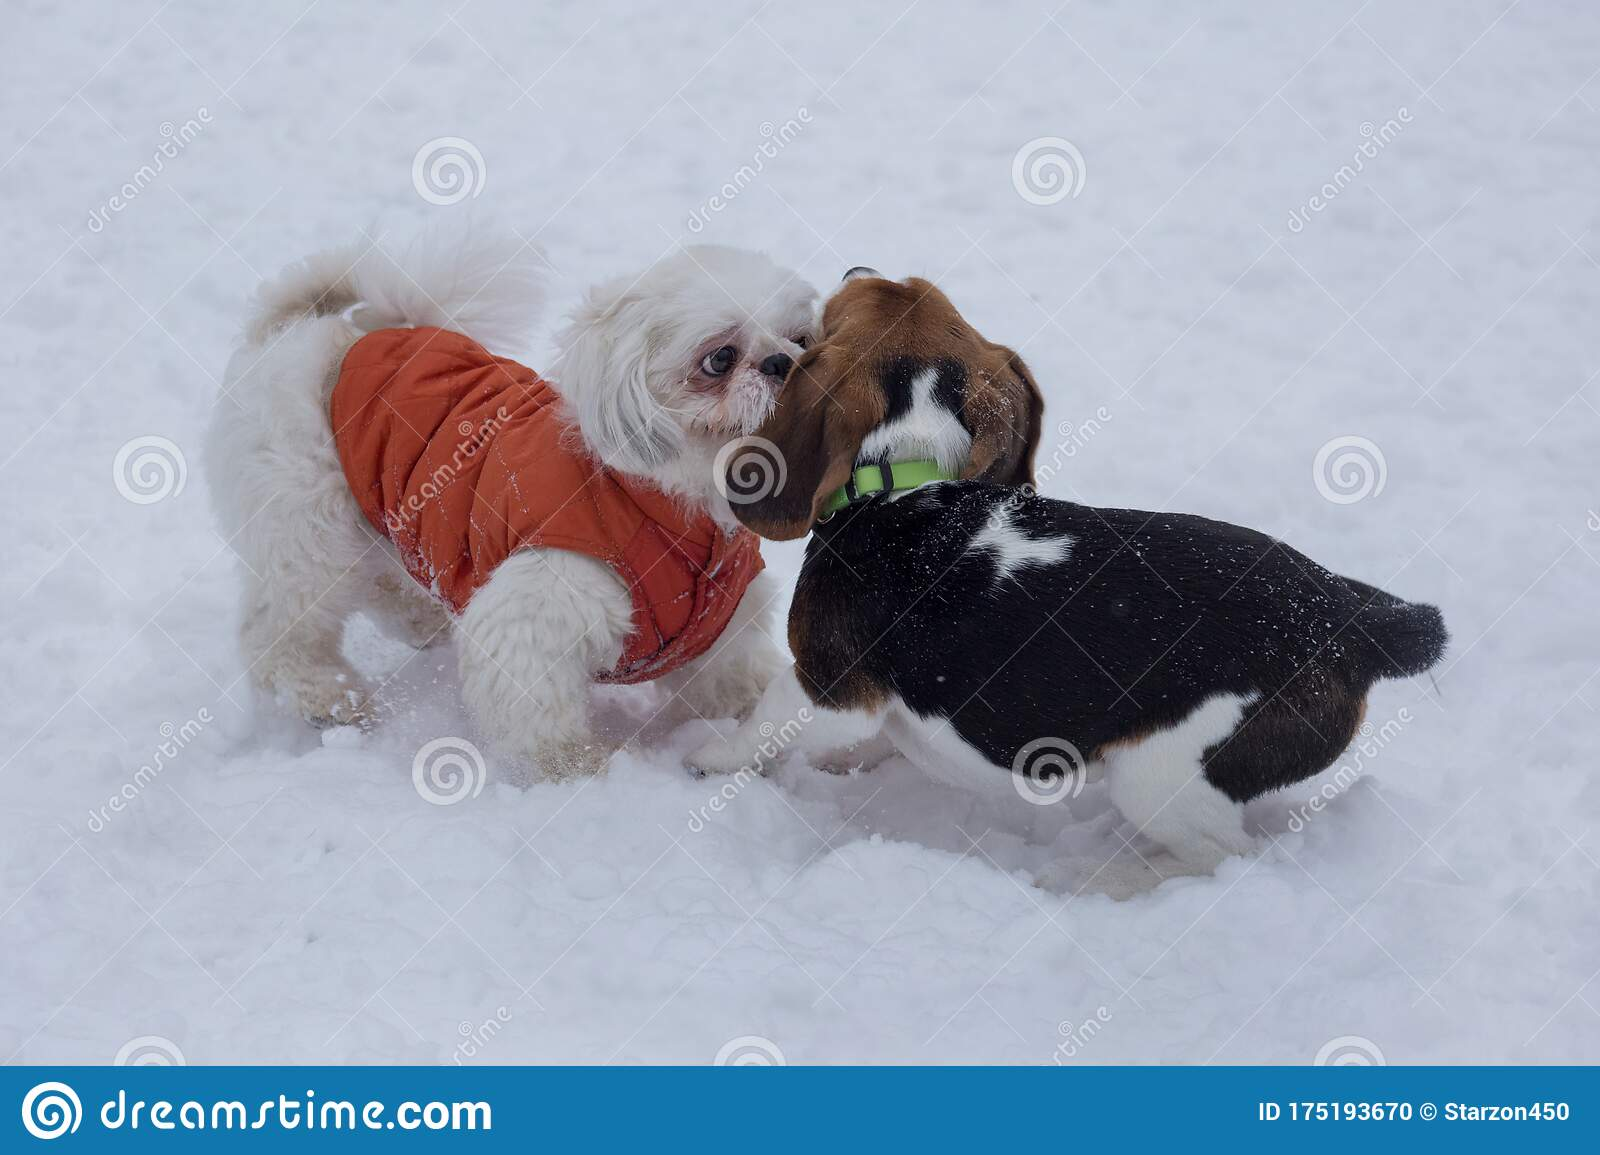 Shih Tzu Puppy And English Beagle Puppy Are Playing On A White Snow In The Winter Park Stock Photo Image Of Horizontal Lion 175193670